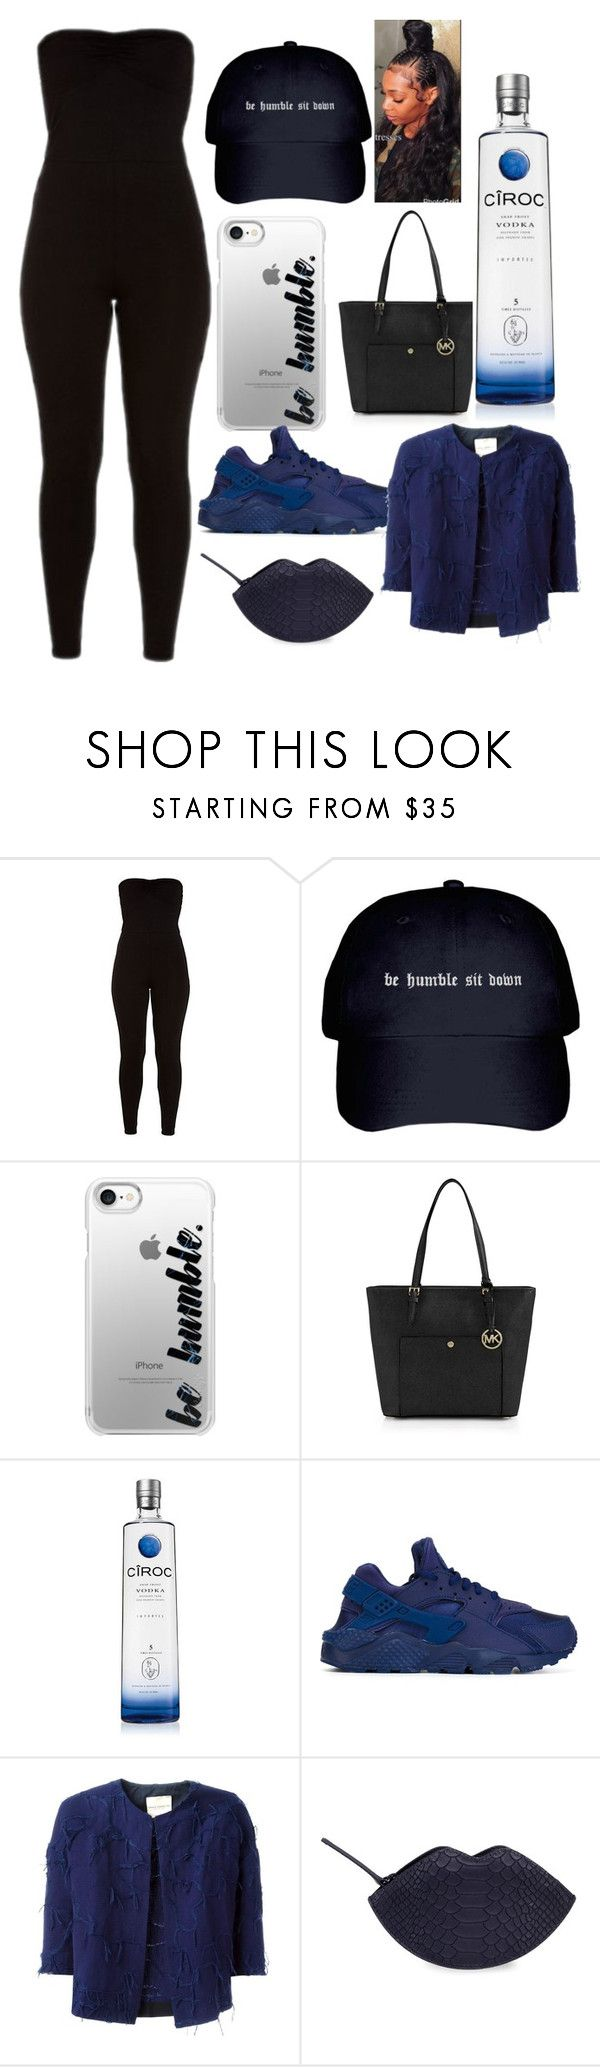 """""""Be humble"""" by lannaslayallday ❤ liked on Polyvore featuring Casetify, MICHAEL Michael Kors, NIKE, Erika Cavallini Semi-Couture and Kendall + Kylie"""